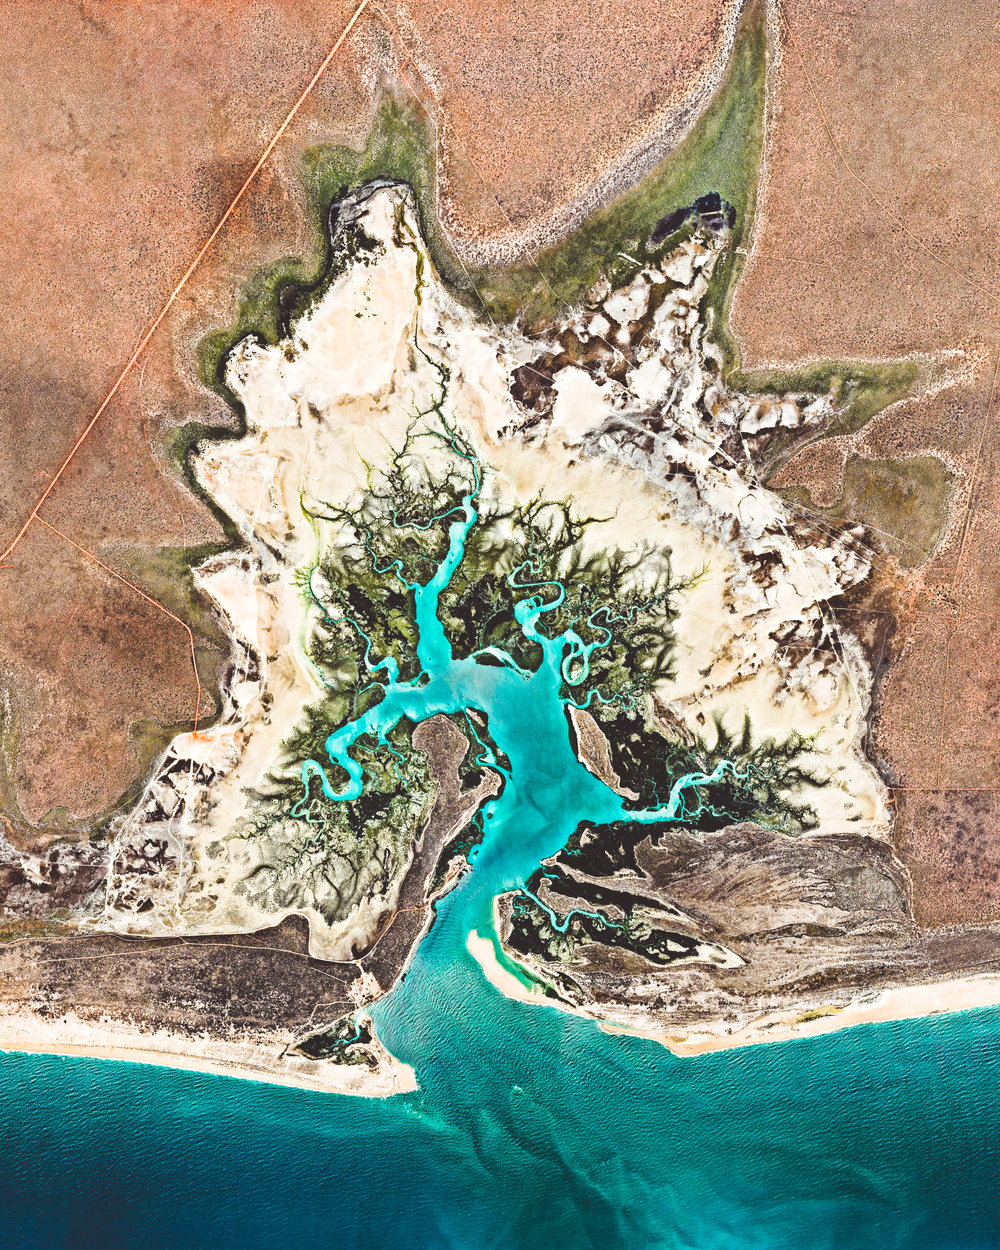 """Willie Creek is a protected tidal estuary roughly 10.5 miles (17 km) north of Broome, Western Australia. The creek's calm, nutrient-rich waters make it an ideal habitat for the Pinctada maxima oyster, which produces world-renowned pearls.  17°45'45.2""""S, 122°14'14.2""""E  Source imagery: Nearmap"""